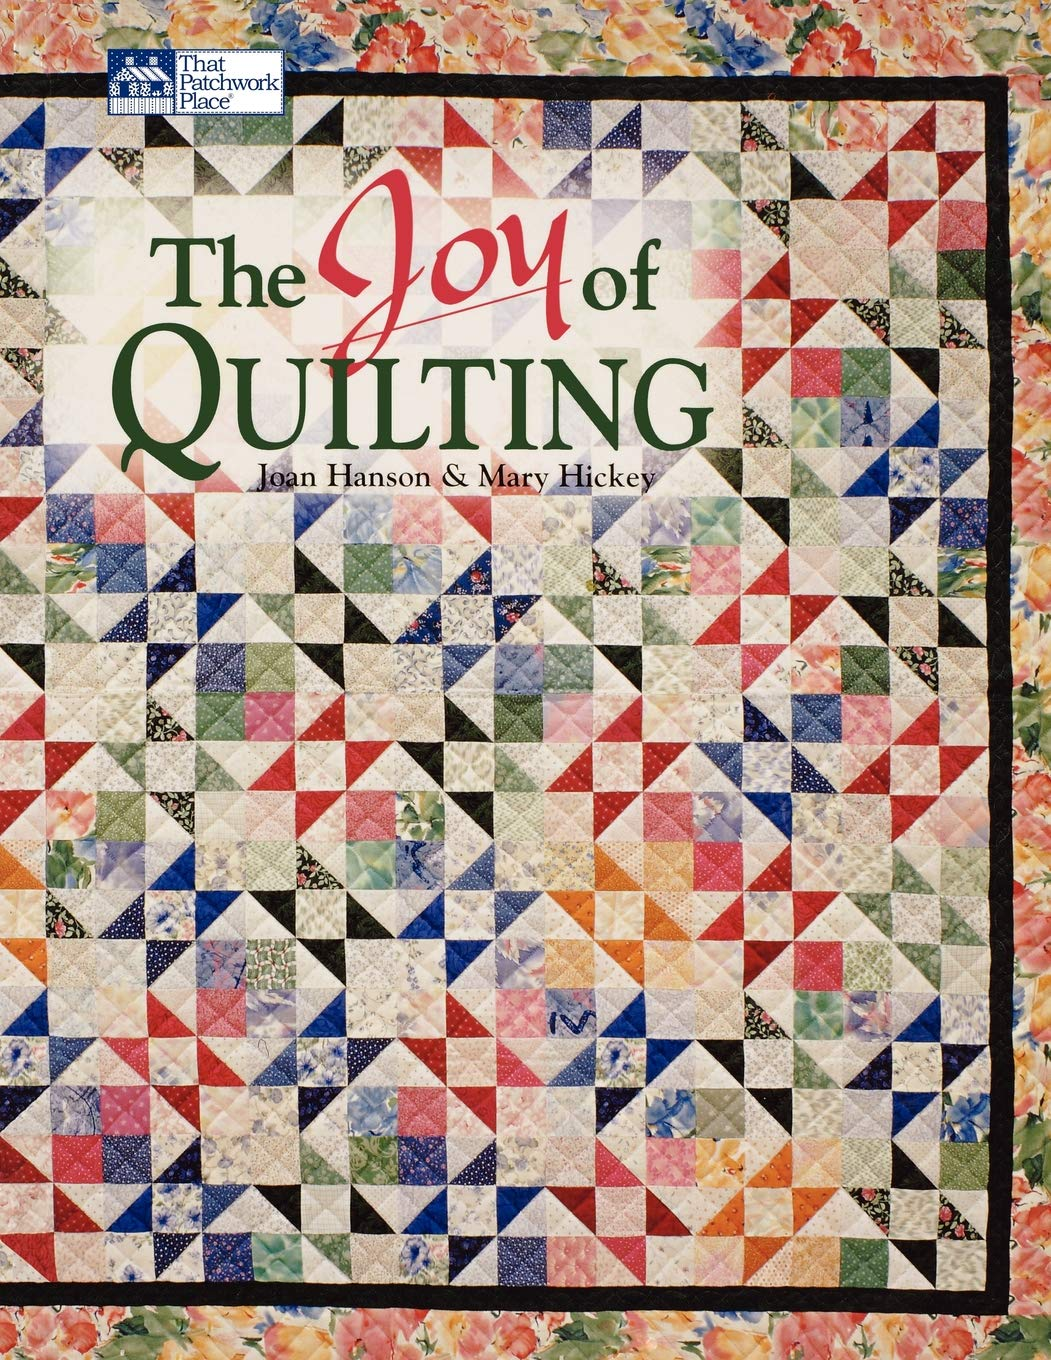 """Joy of Quilting, The """"Print on Demand Edition"""" (That Patchwork Place):  Amazon.co.uk: Mary Hickey, Joan Hanson: 0744527101917: Books"""